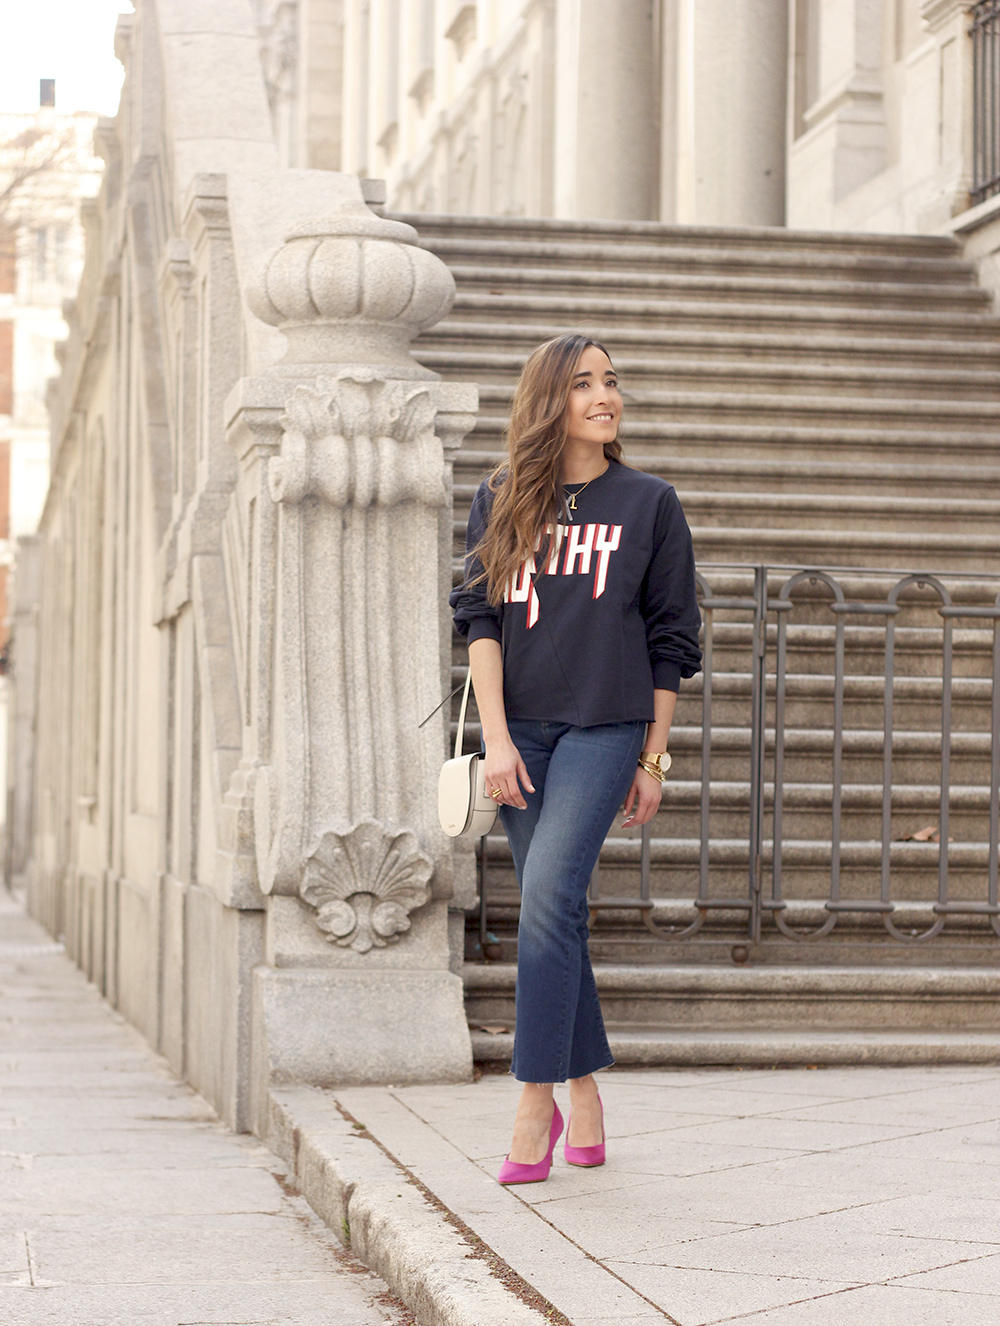 sweatshirt pink heels jeans find amazon fashion street style outfit 20193